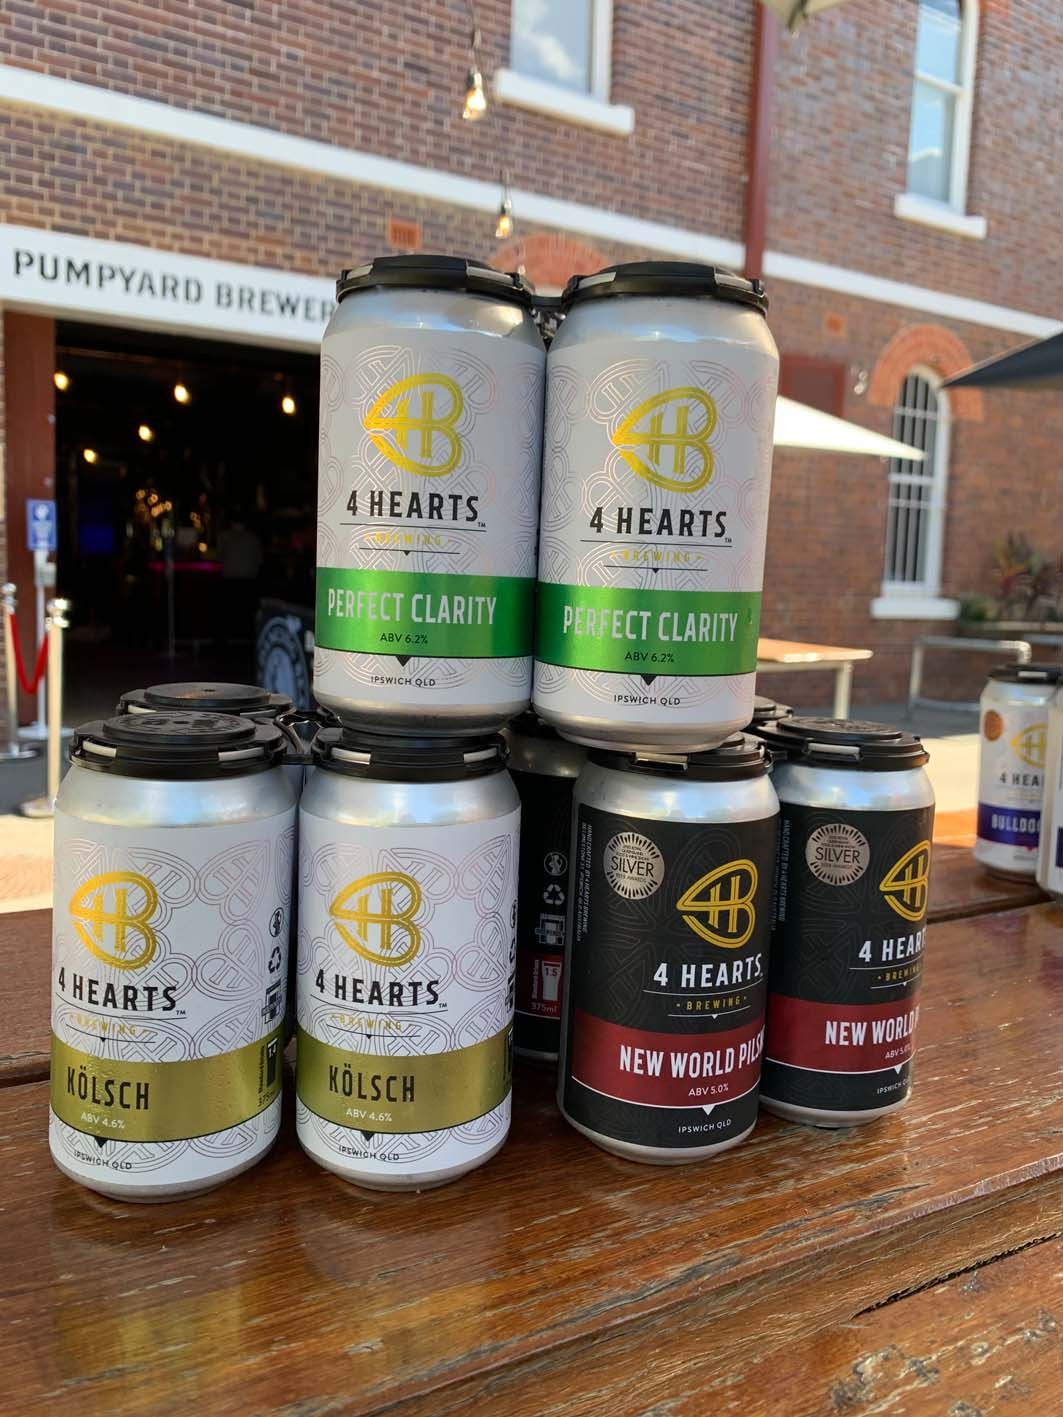 4 Hearts Brewing canned beer range